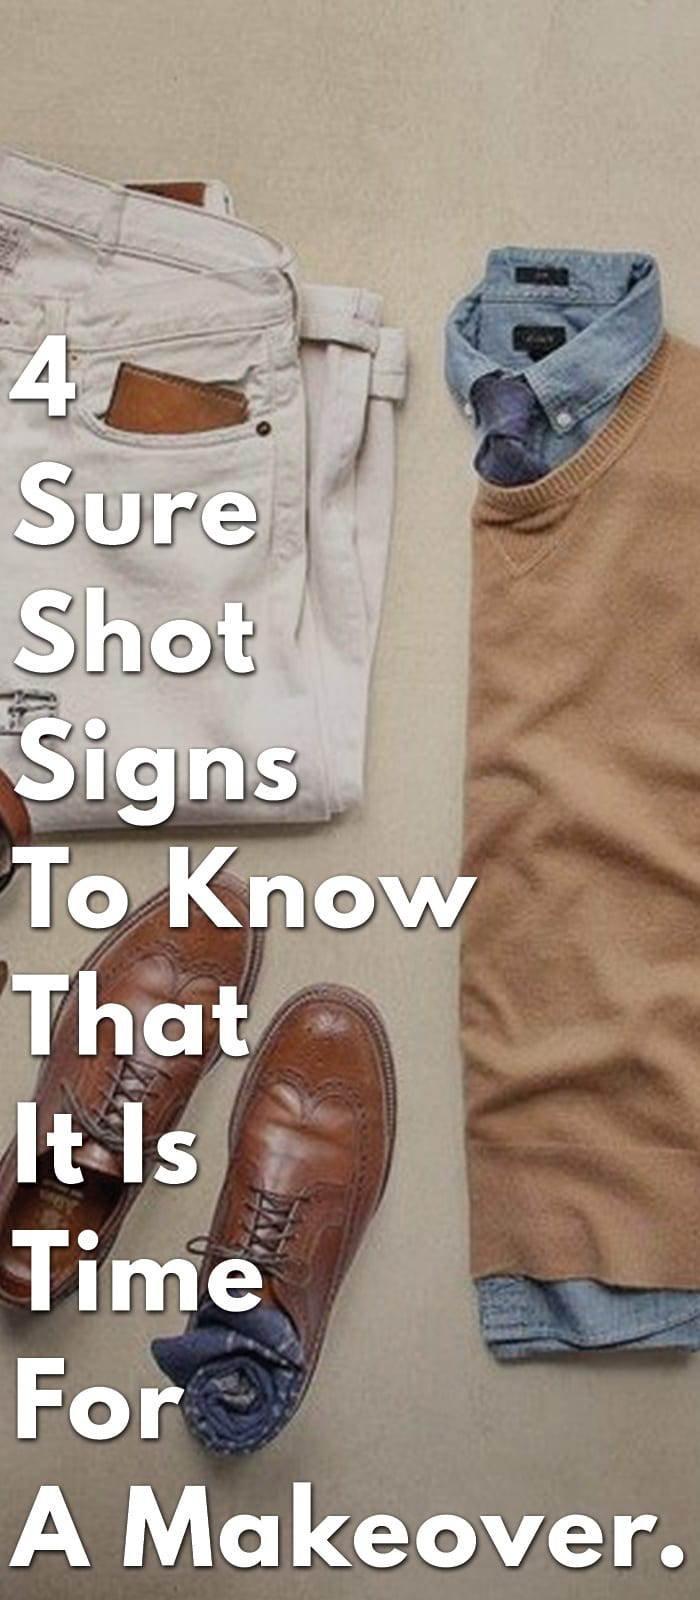 4-Sure-Shot-Signs-To-Know-That-It-Is-Time-For-A-Makeover.